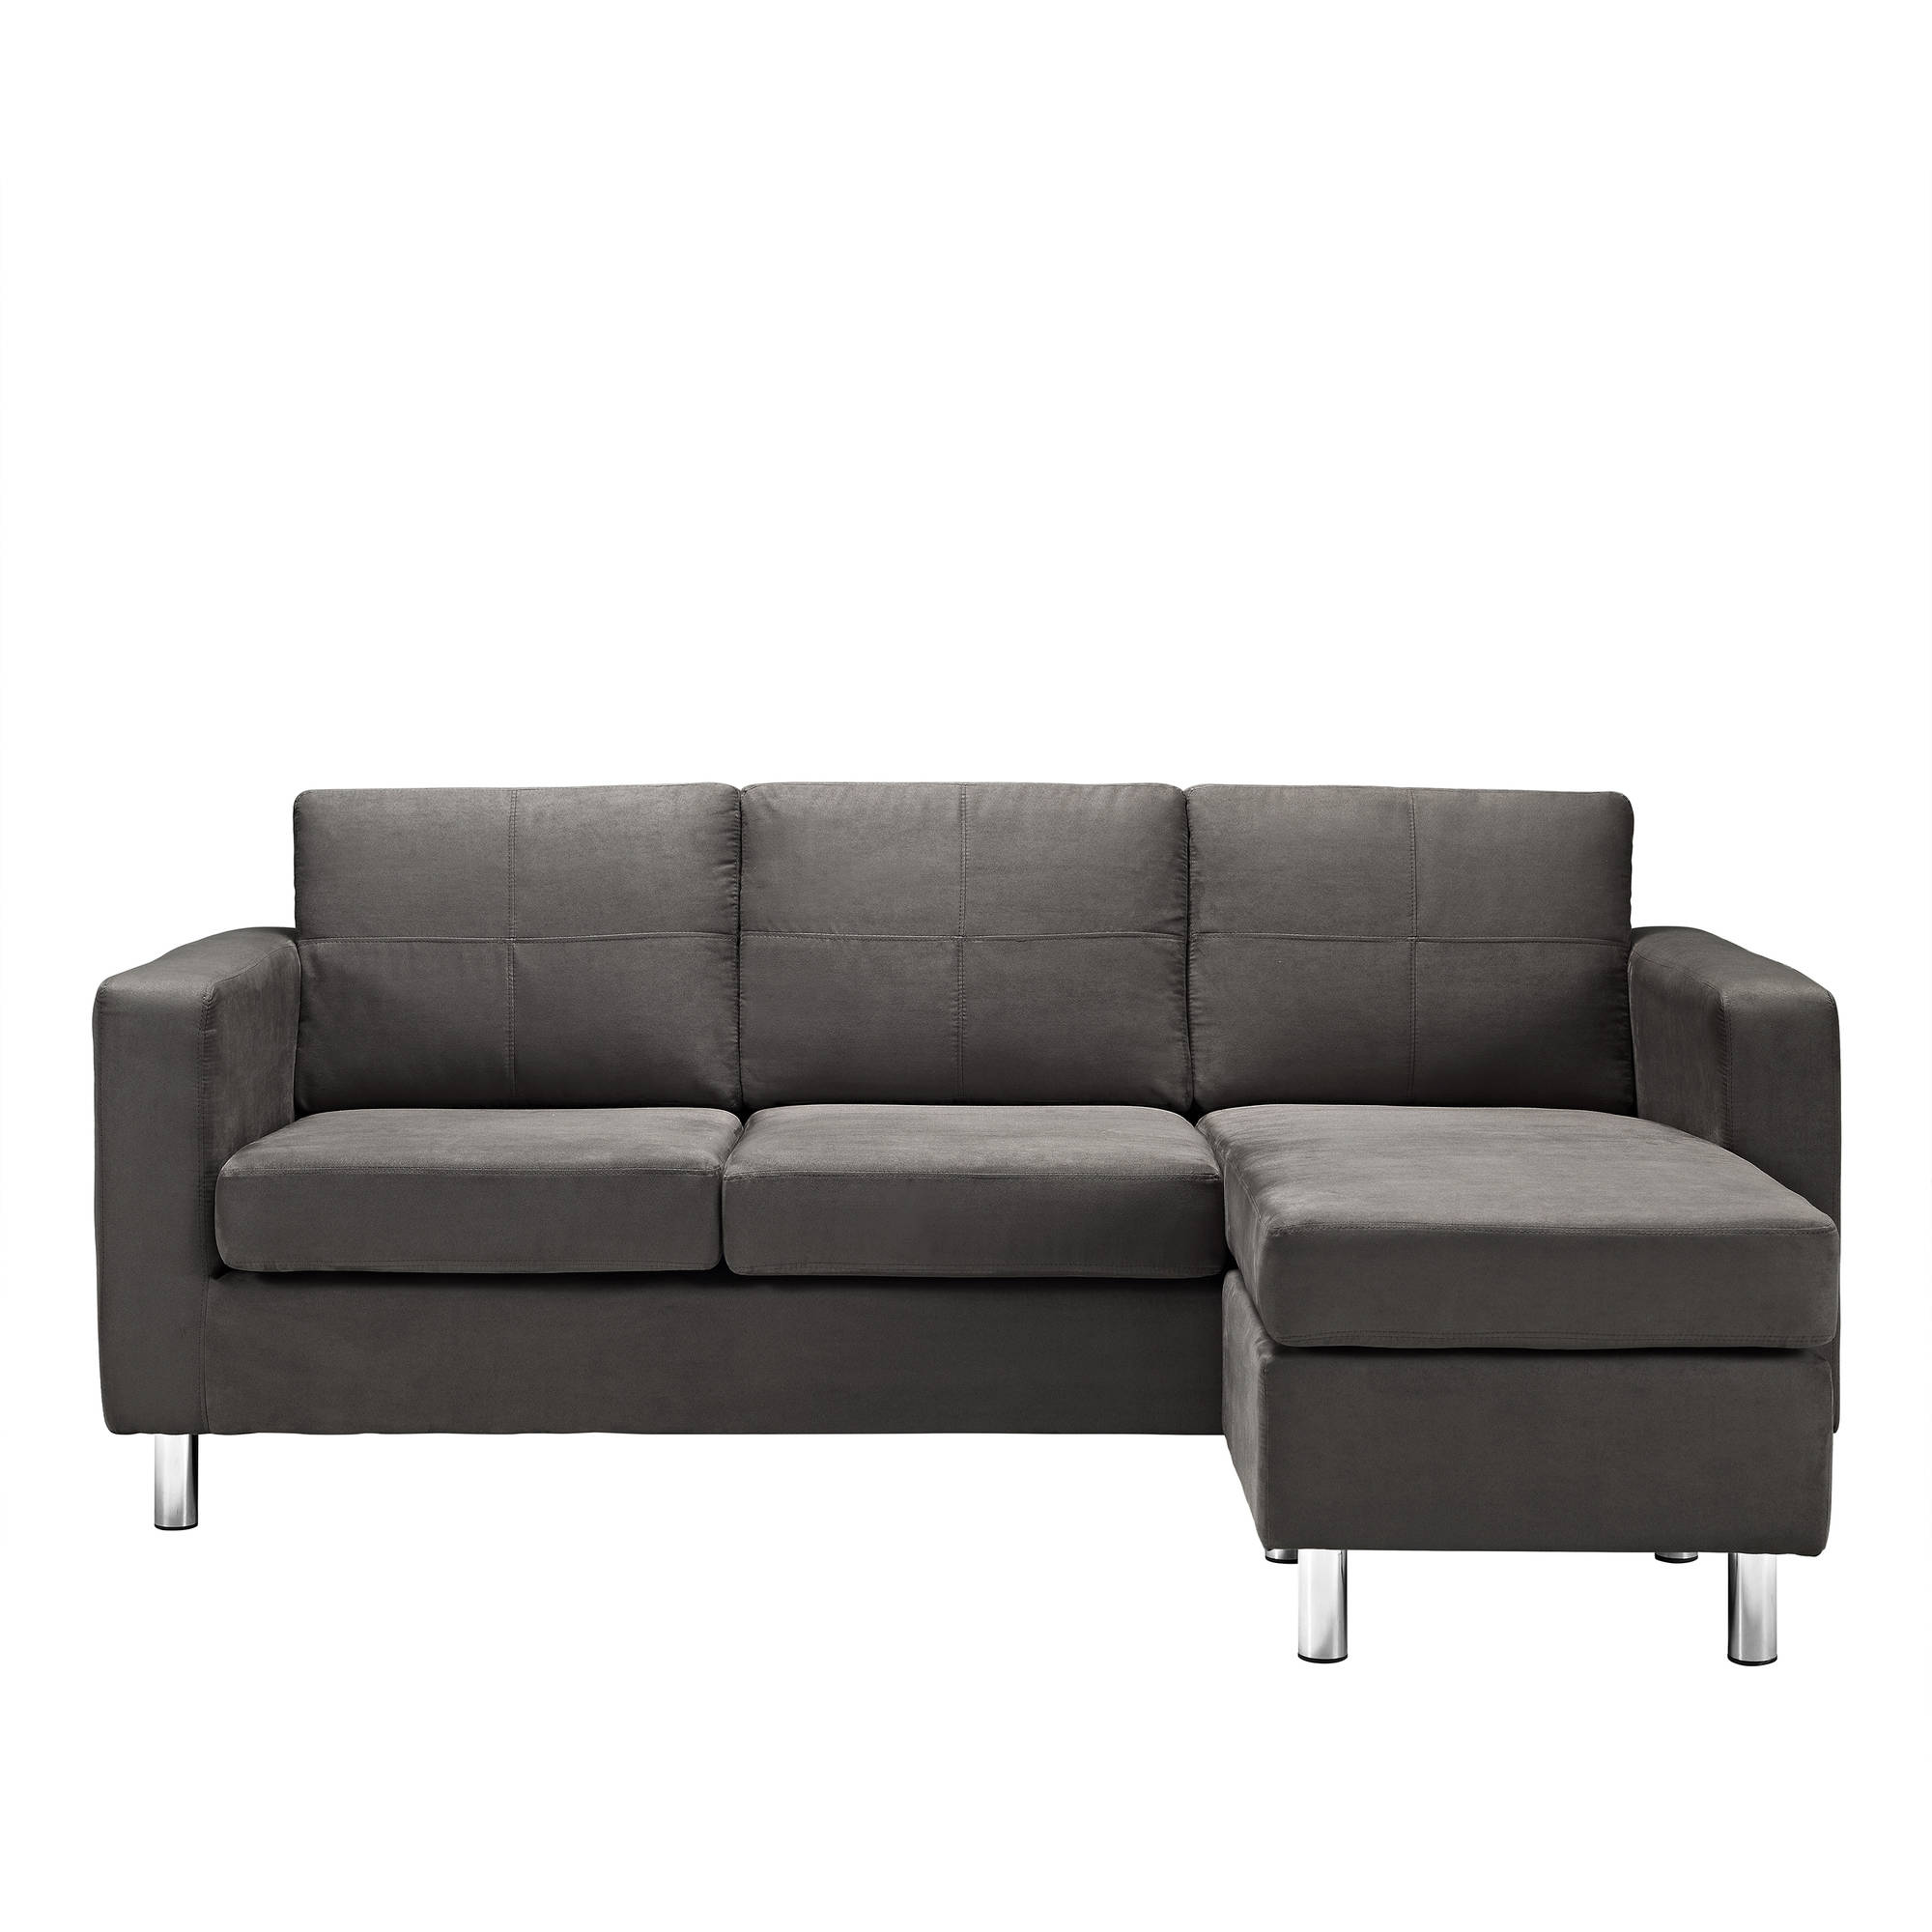 Attirant Dorel Living Small Spaces Configurable Sectional Sofa, Multiple Colors    Walmart.com